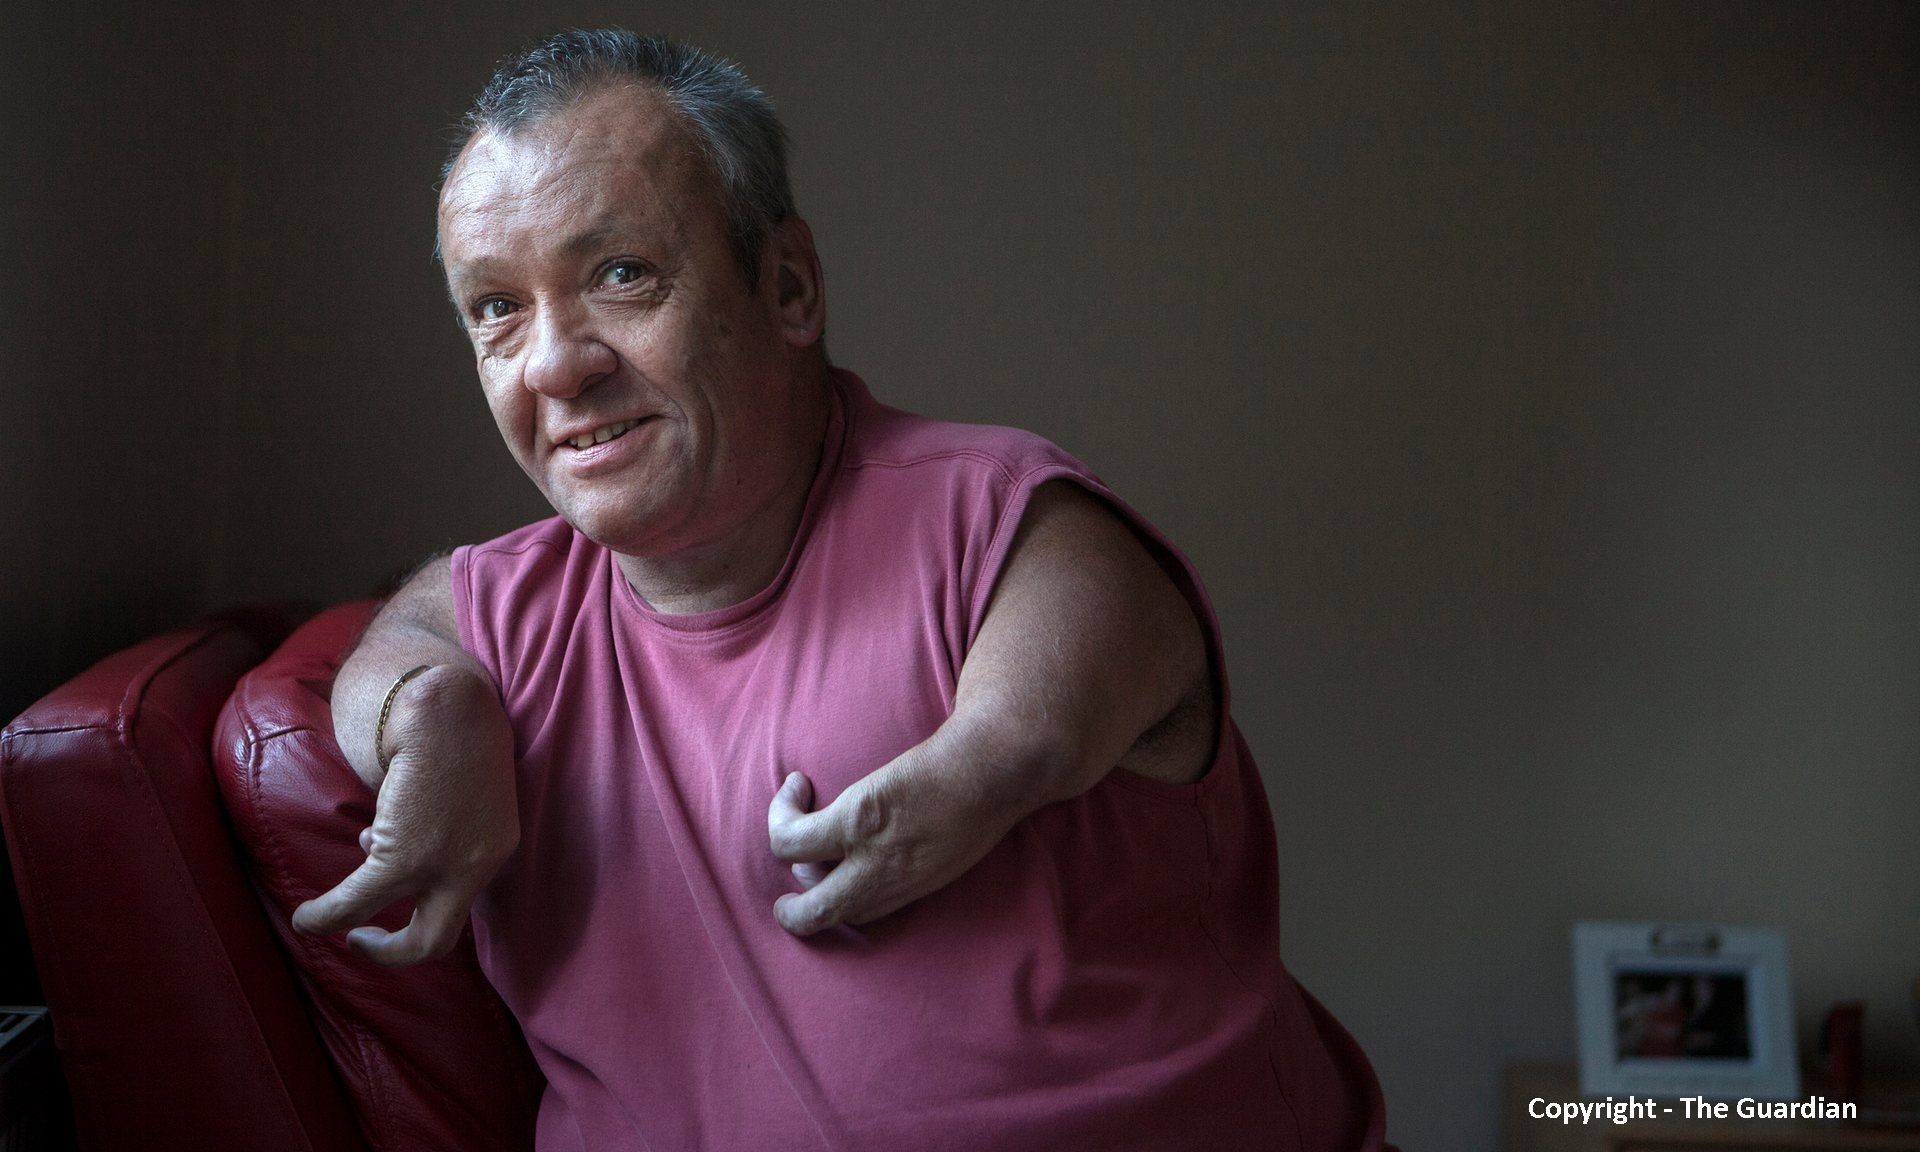 Phil Spanswick, whose disabilities were caused in the womb by the use of the thalidomide drug, had his PIP cut and his condition classed as 'genetic'. Photograph: Tom Pilston for the Guardian